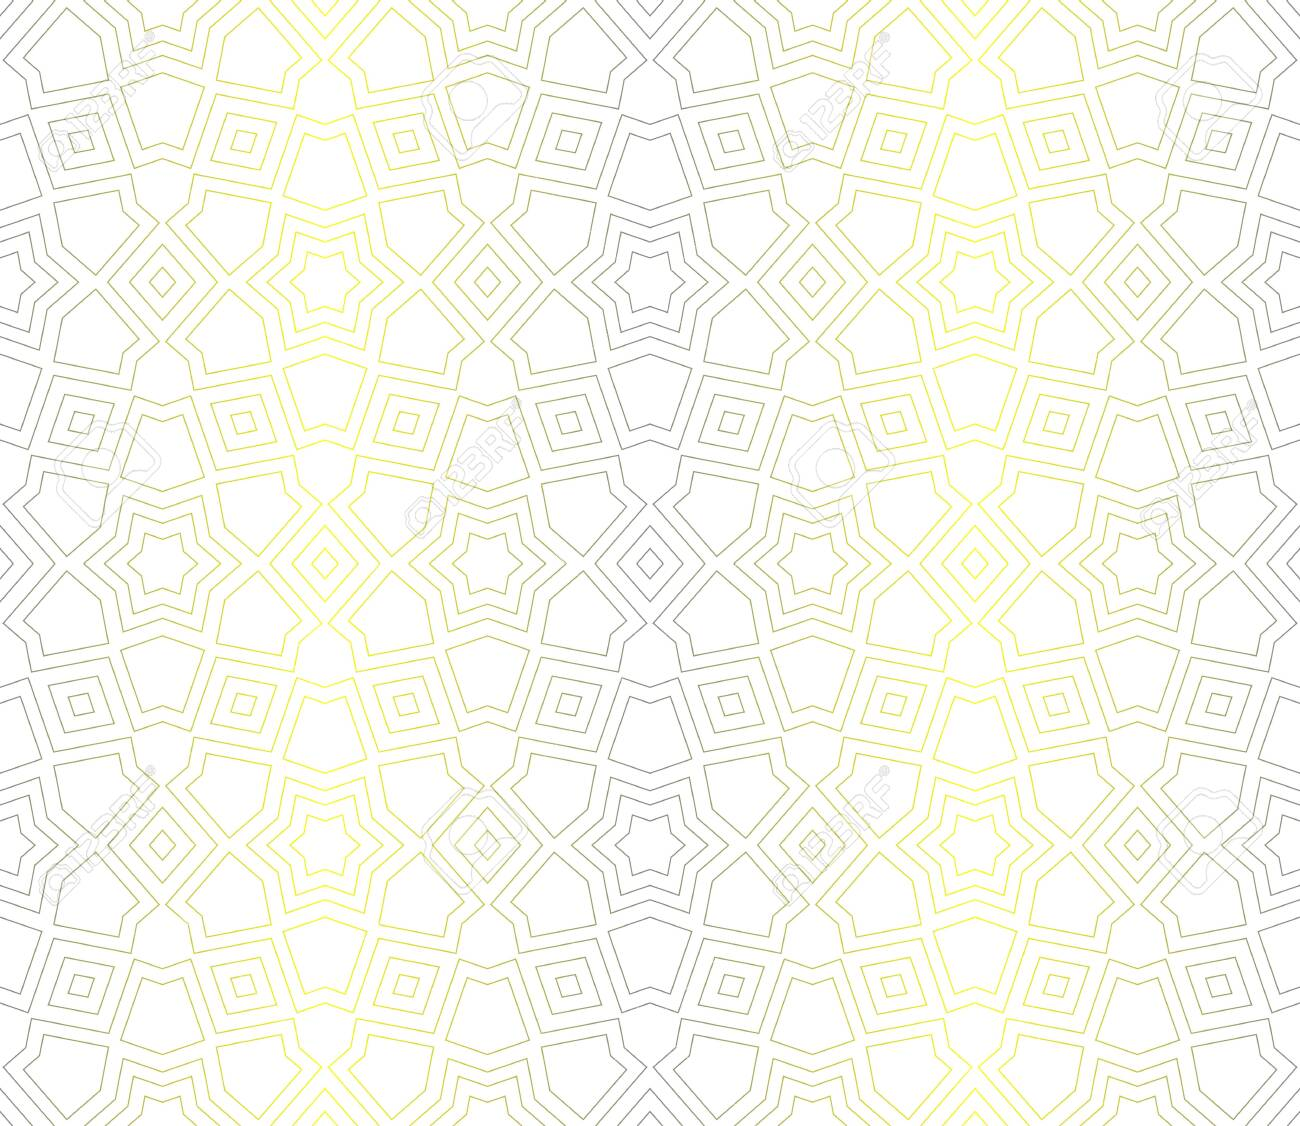 Hologram abstract pattern texture for background. Vector seamless pattern. for holiday decoration, holiday packaging. Vector seamless pattern - 122706405